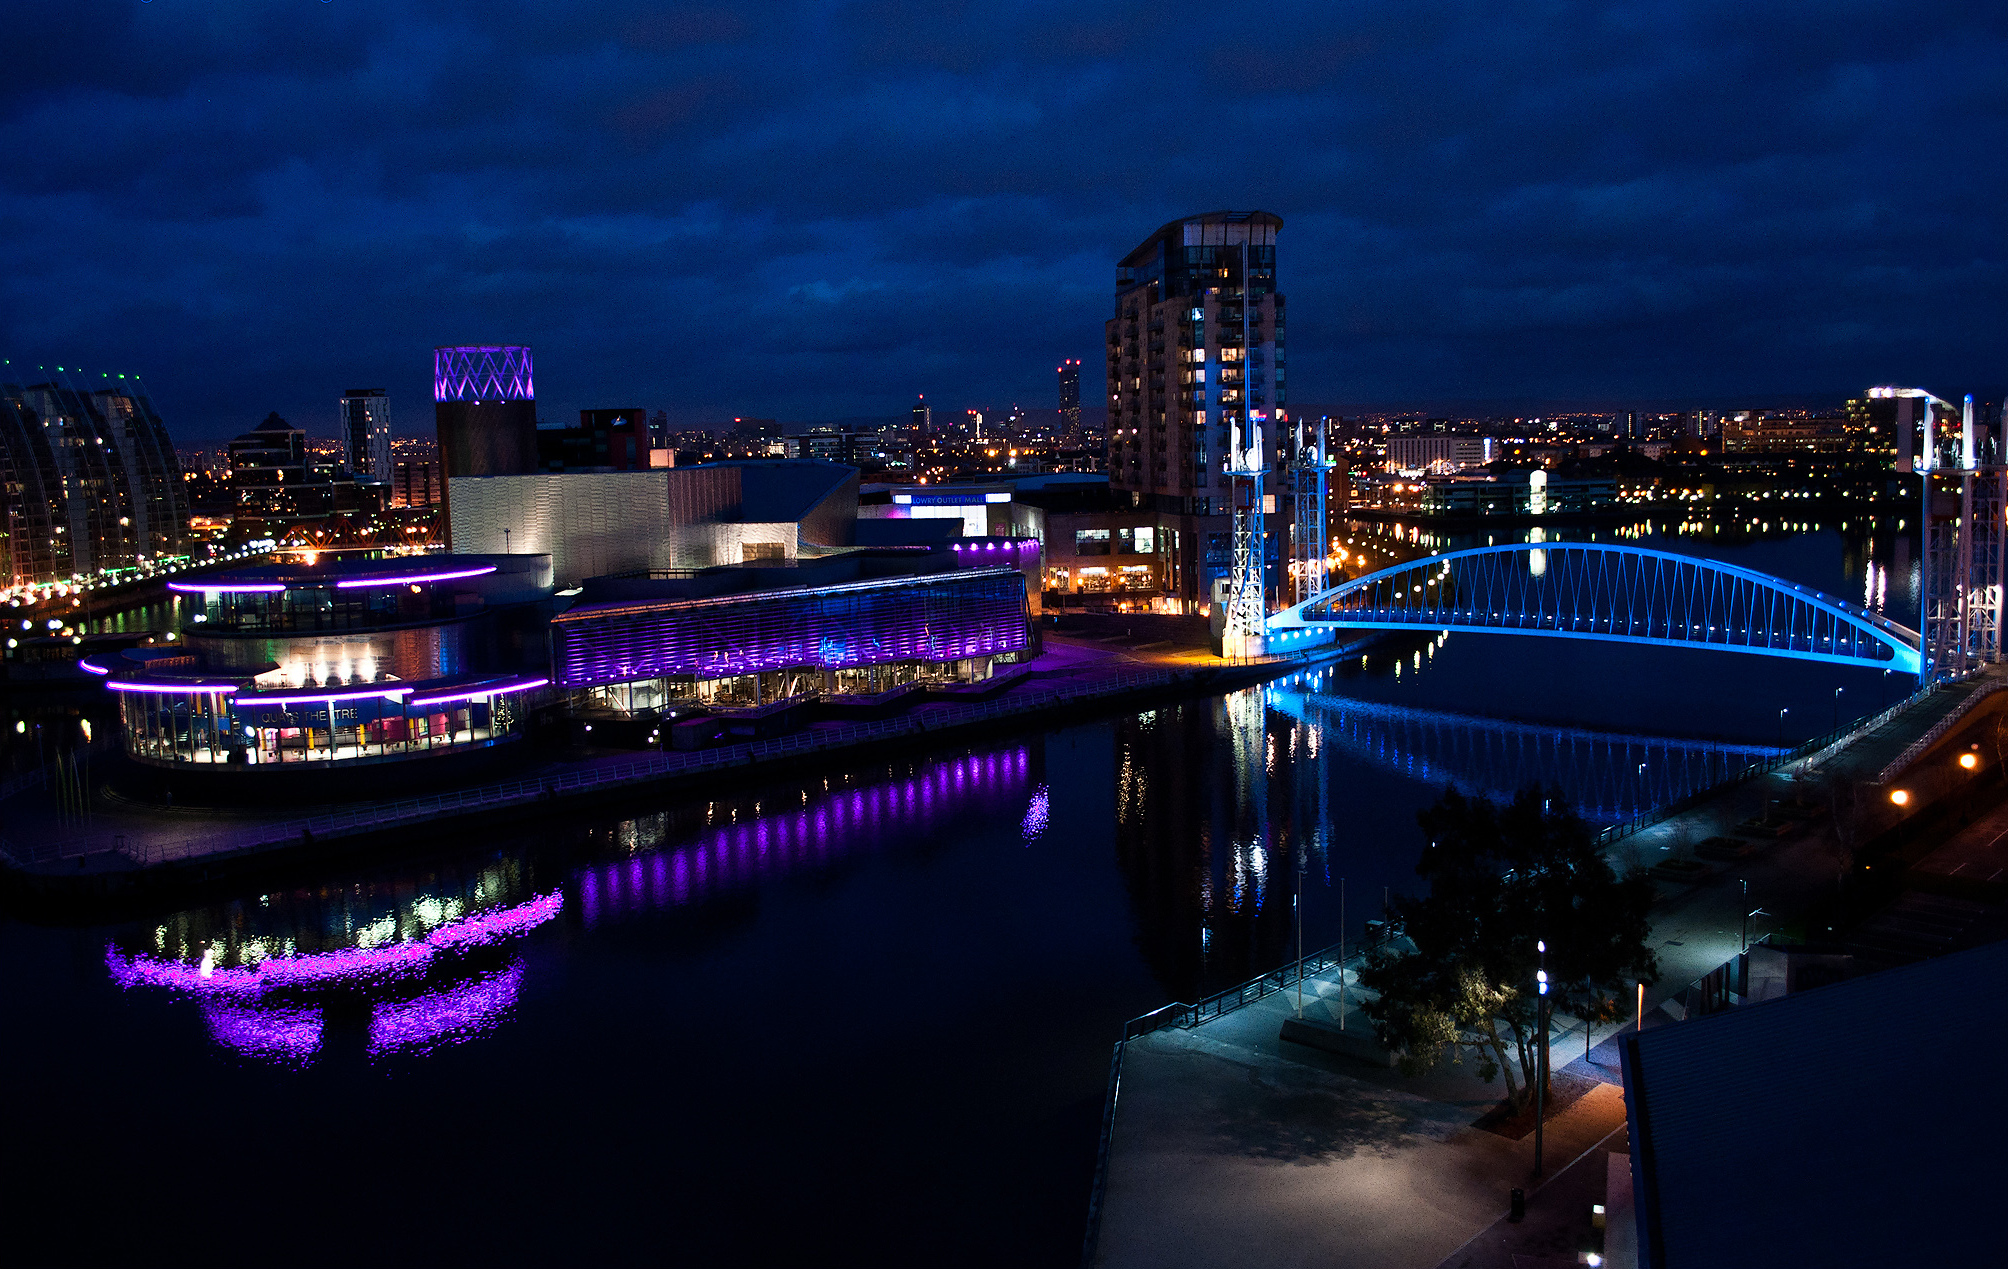 Salford_Quays,_Manchester_(8300577553)